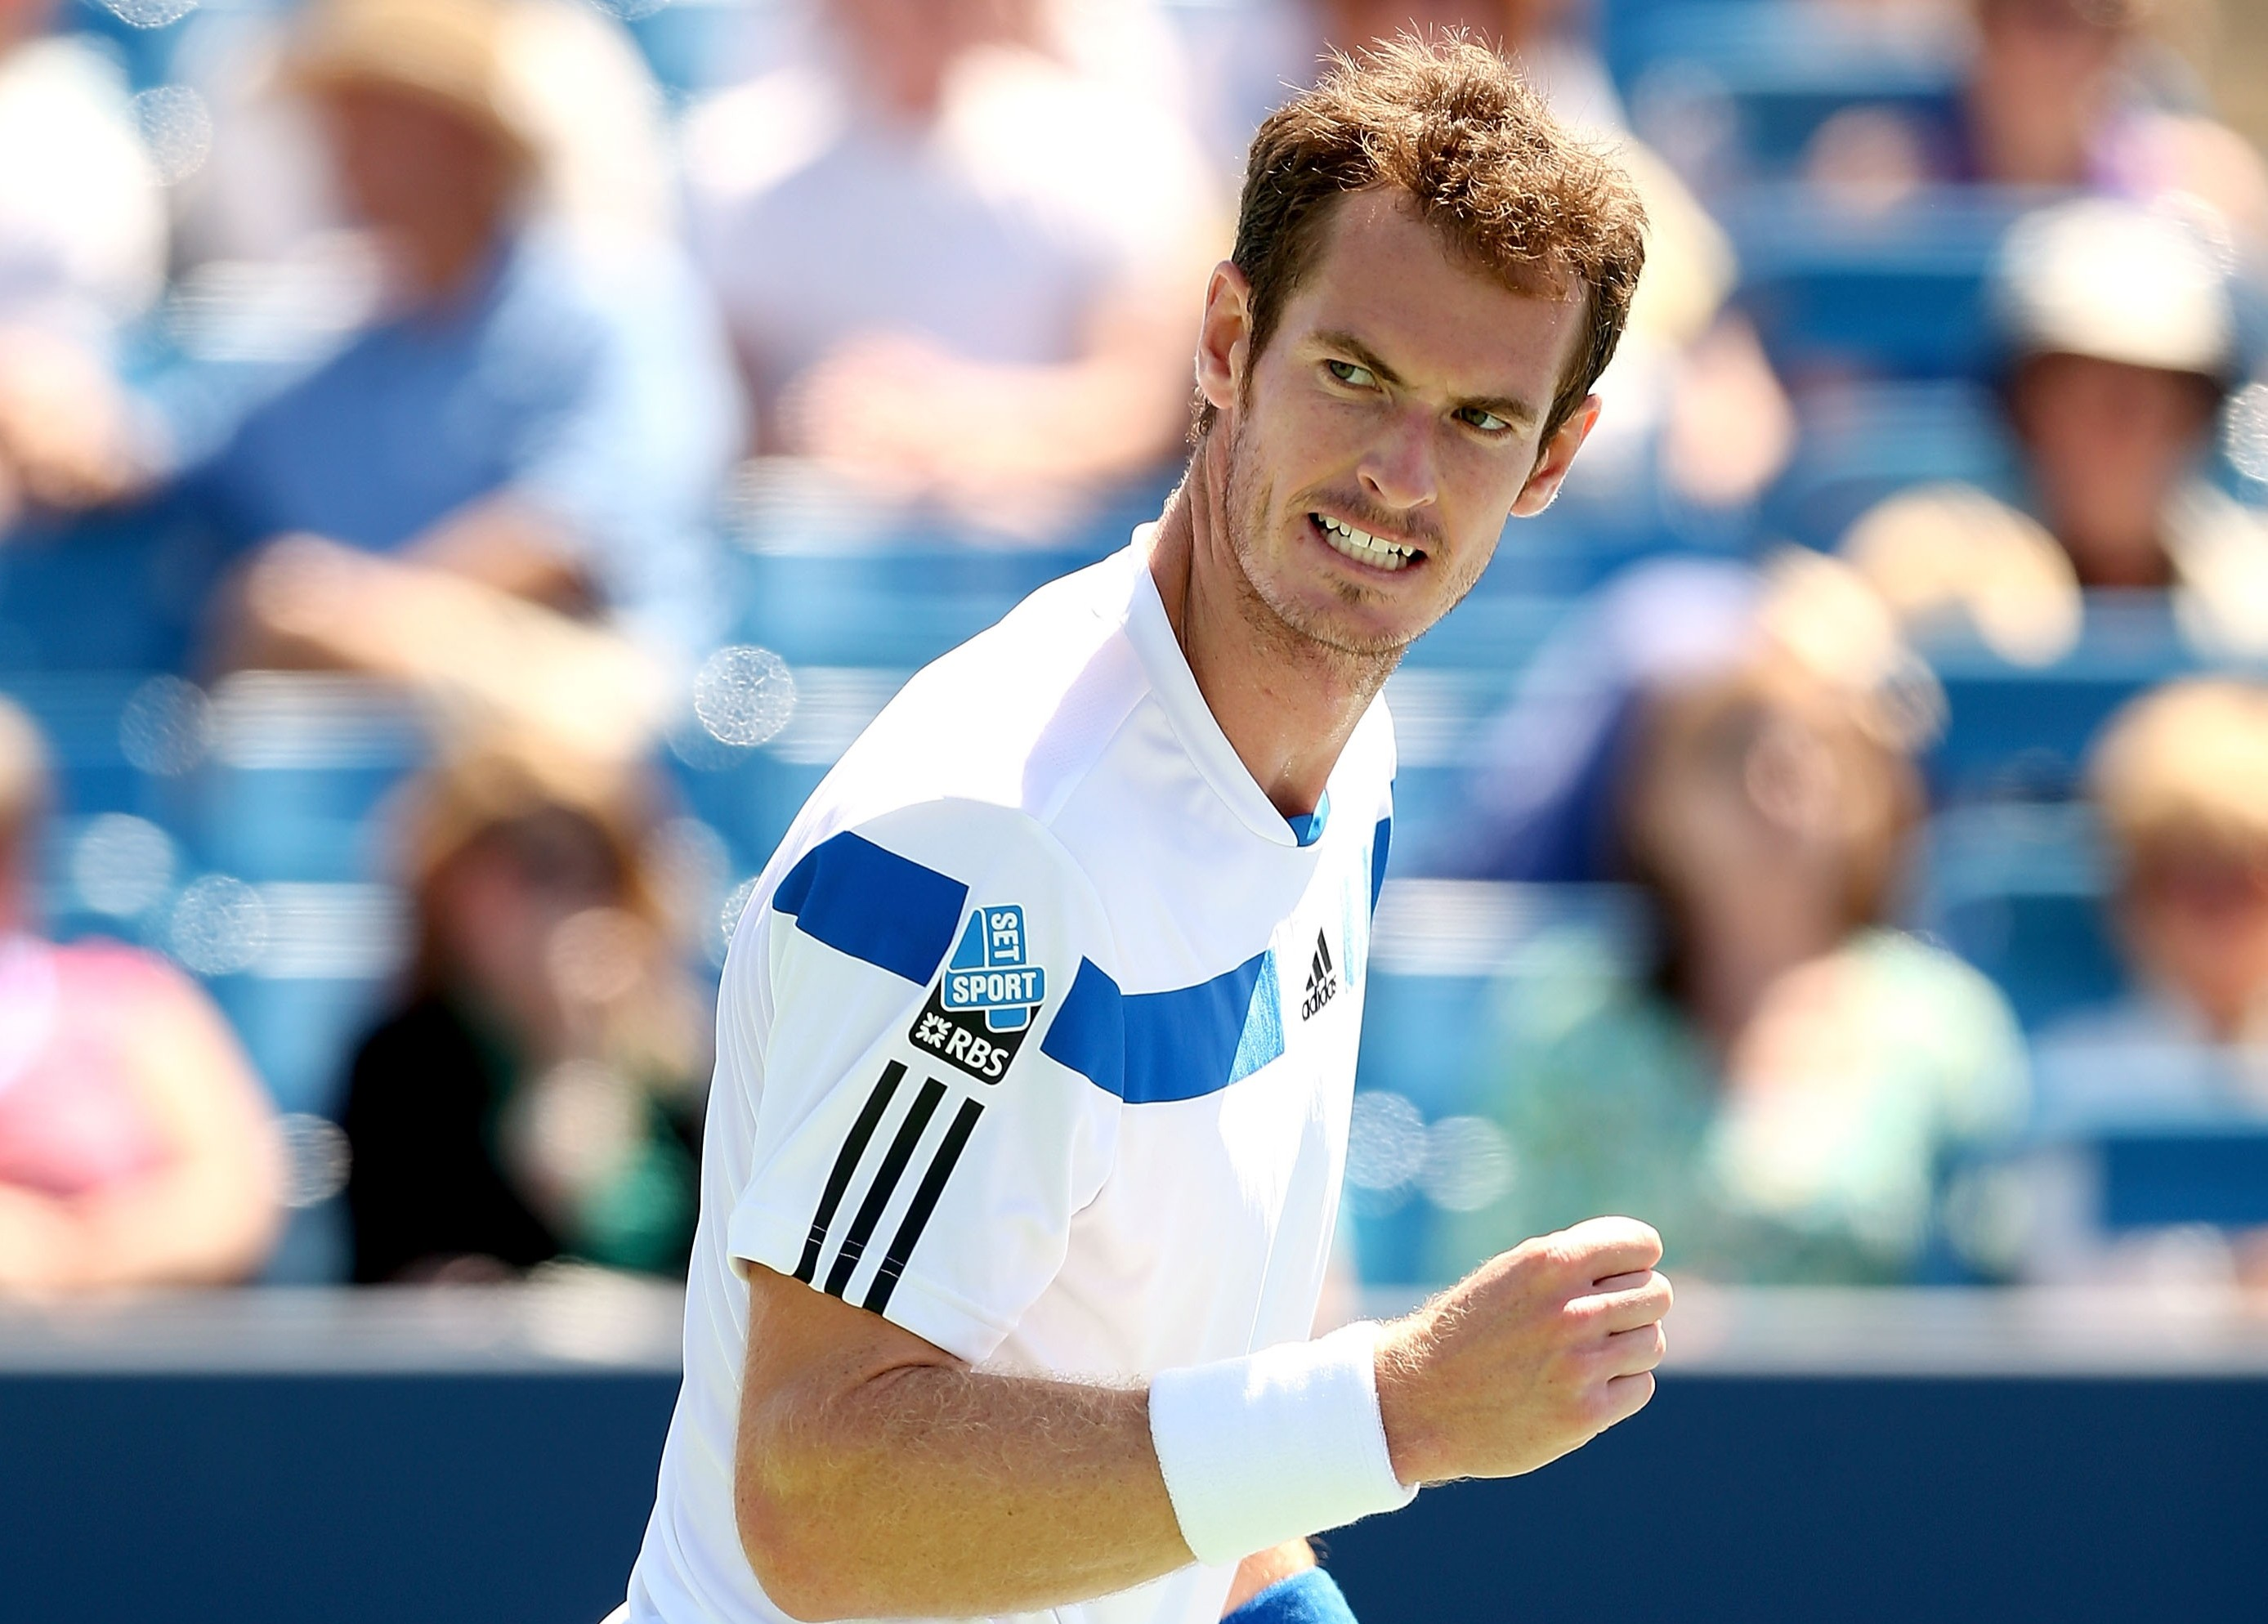 Andy Murray will be true world No.1 if he retains US Open, says John McEnroe